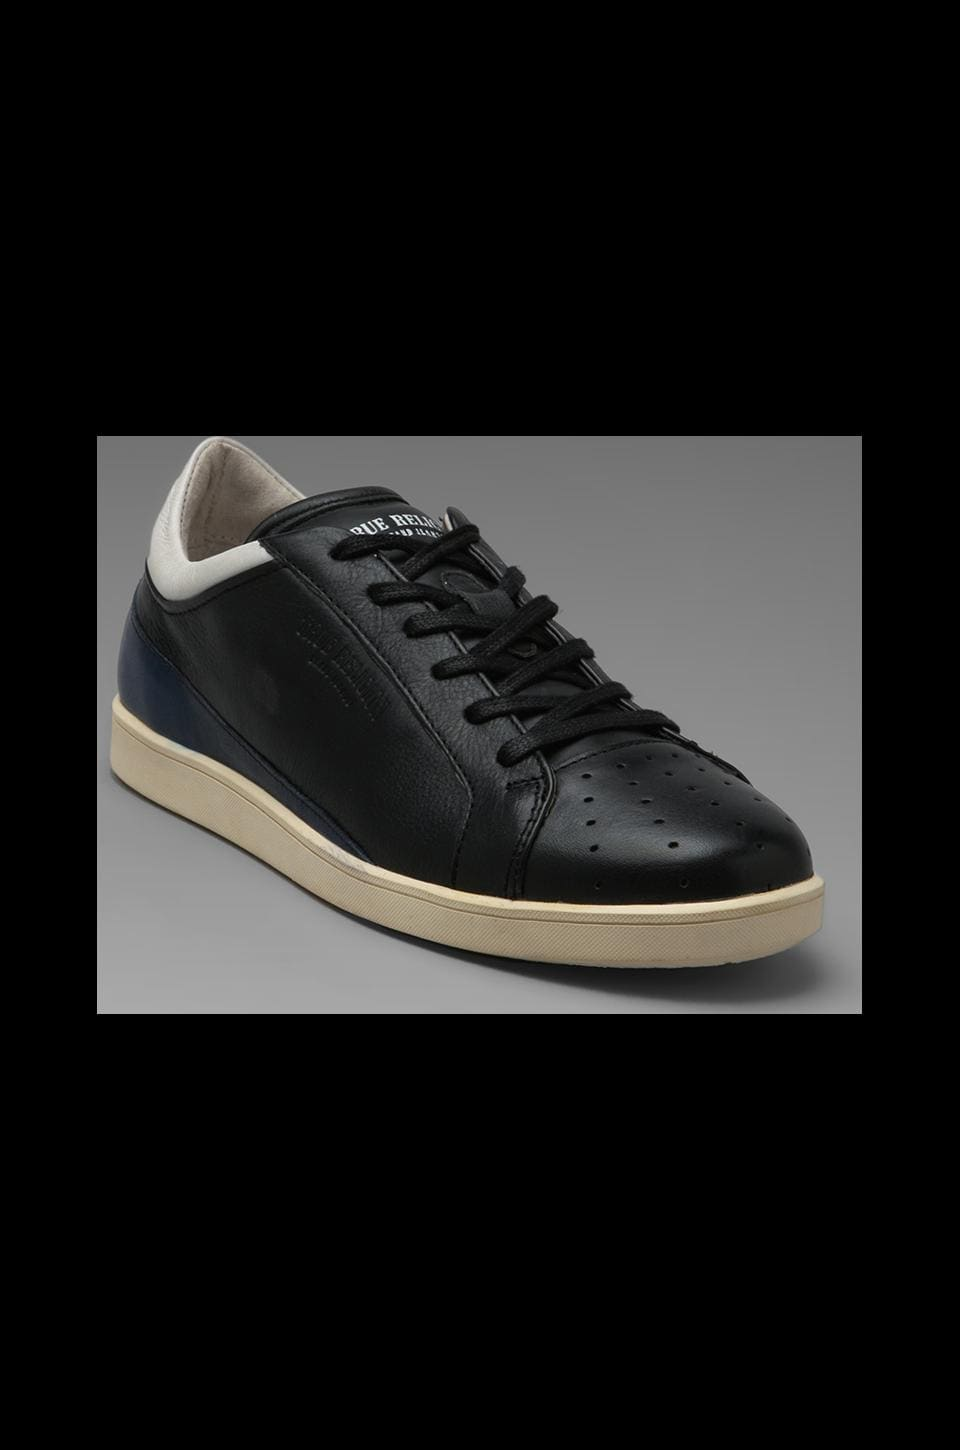 True Religion Lincoln Low Sneaker in Black/Blue/White